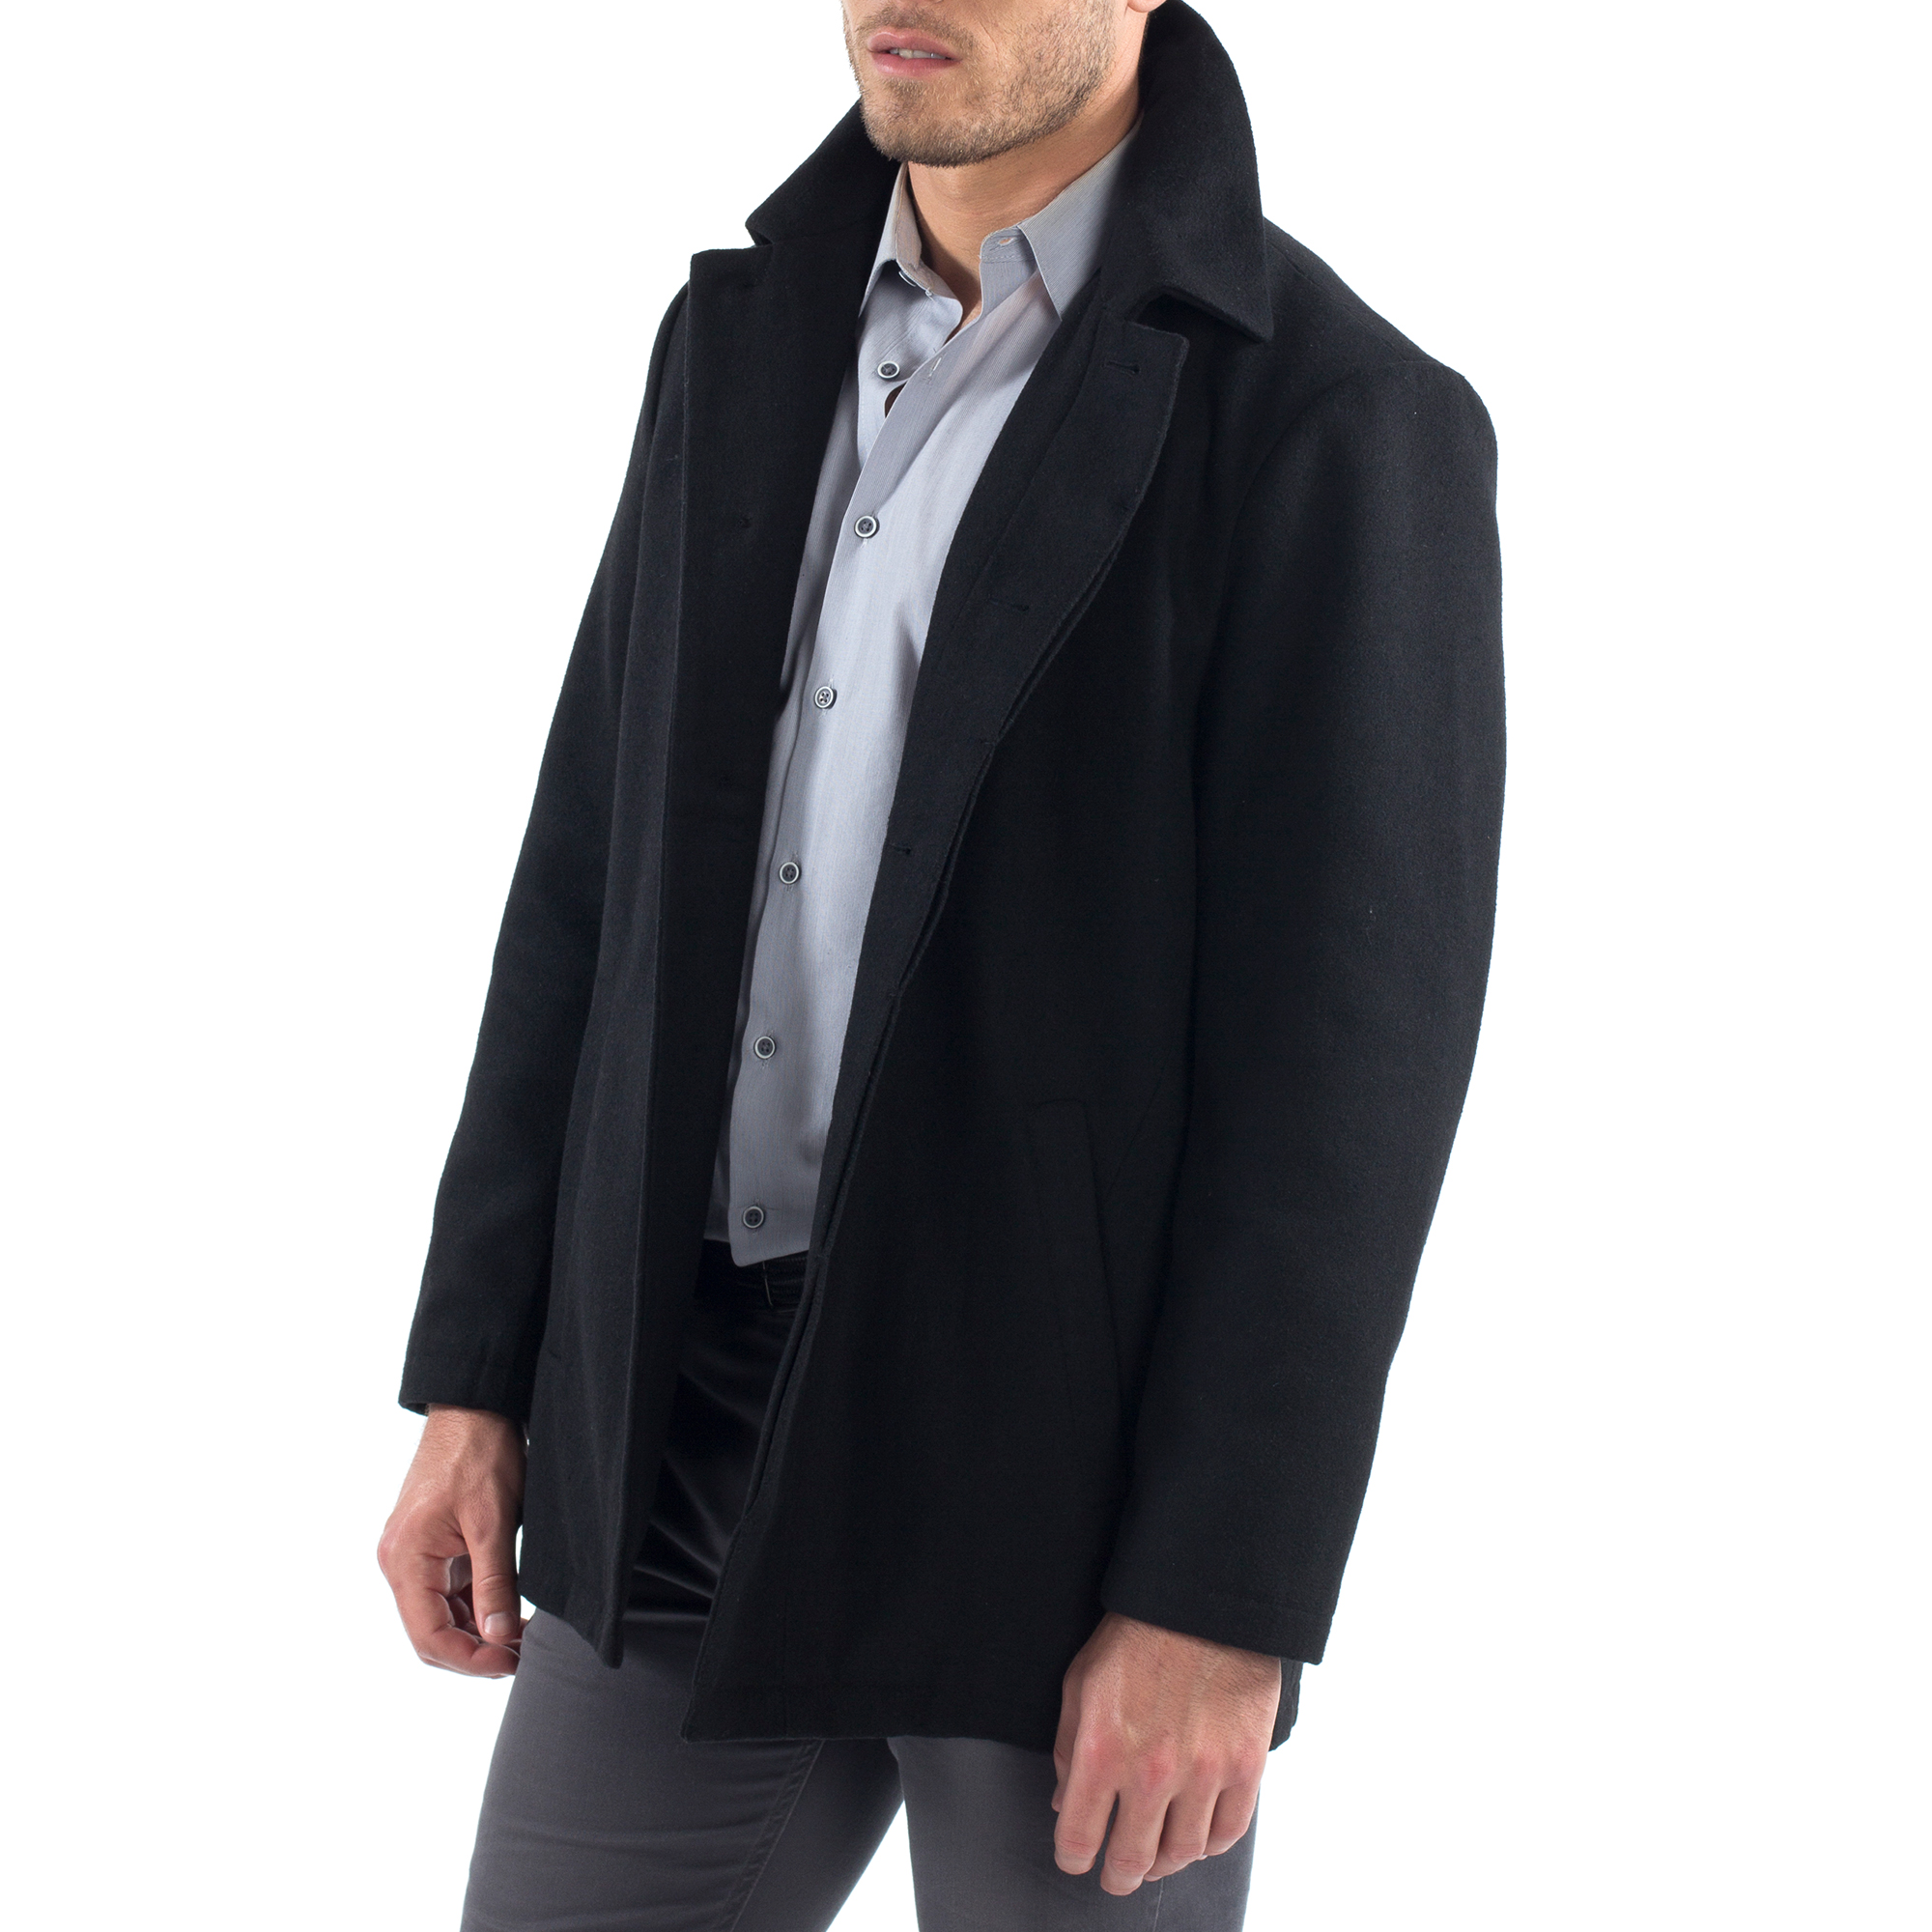 Alpine-Swiss-Vance-Mens-Jacket-Wool-Blend-Button-Up-Coat-Dress-Car-Coat-Blazer thumbnail 20